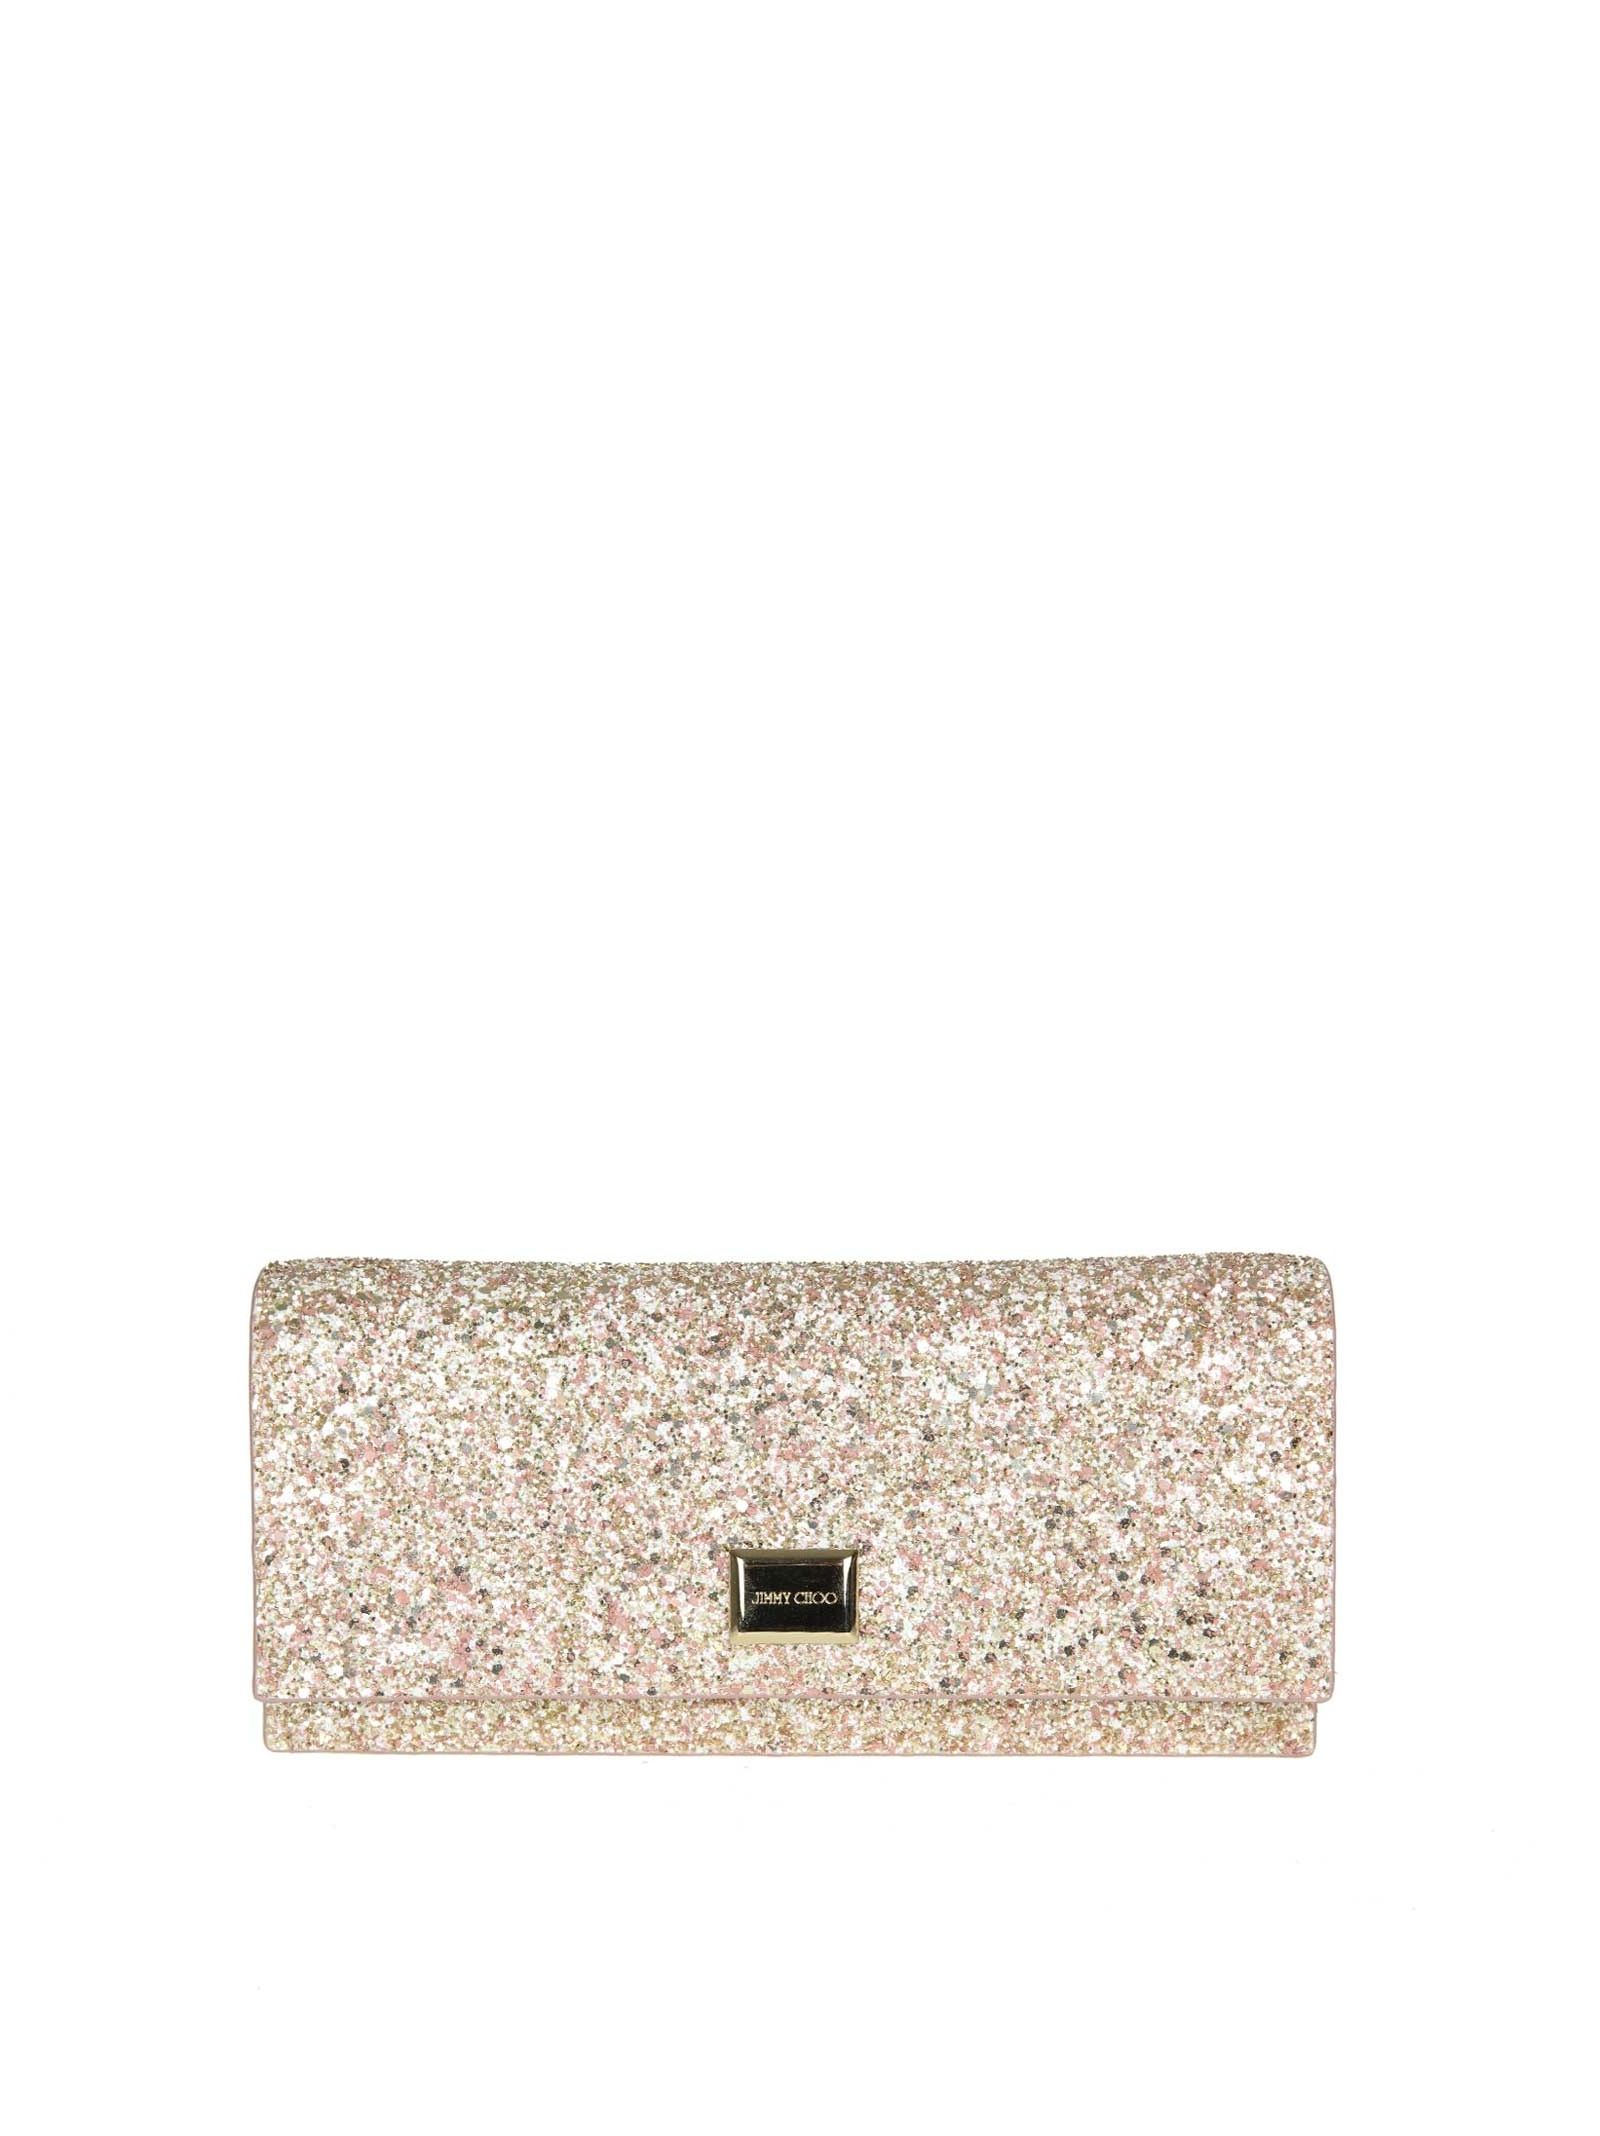 Jimmy Choo Clutch Lilia Agh In Fabric Glitter Color Rosewood